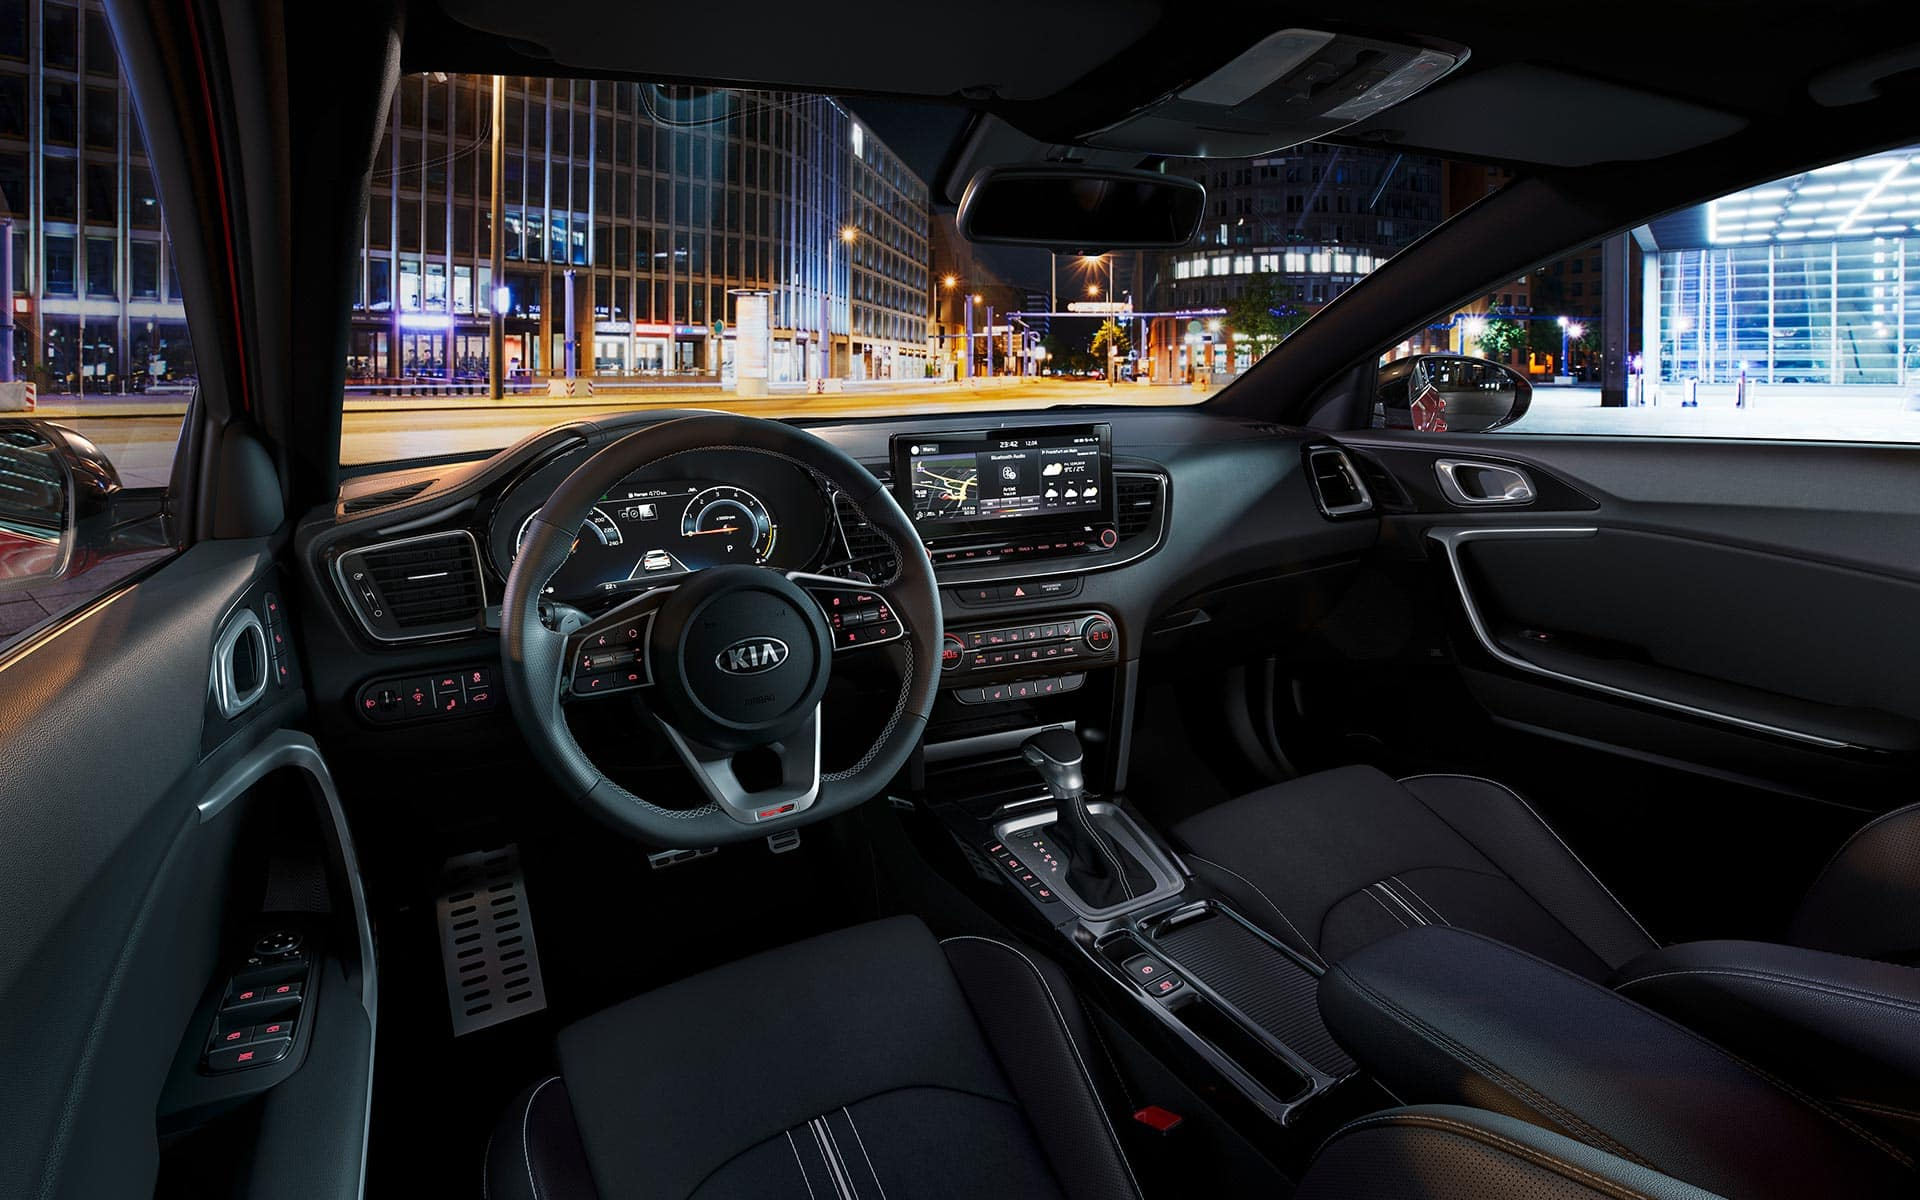 Kia ProCeed – Comfortabel interieur